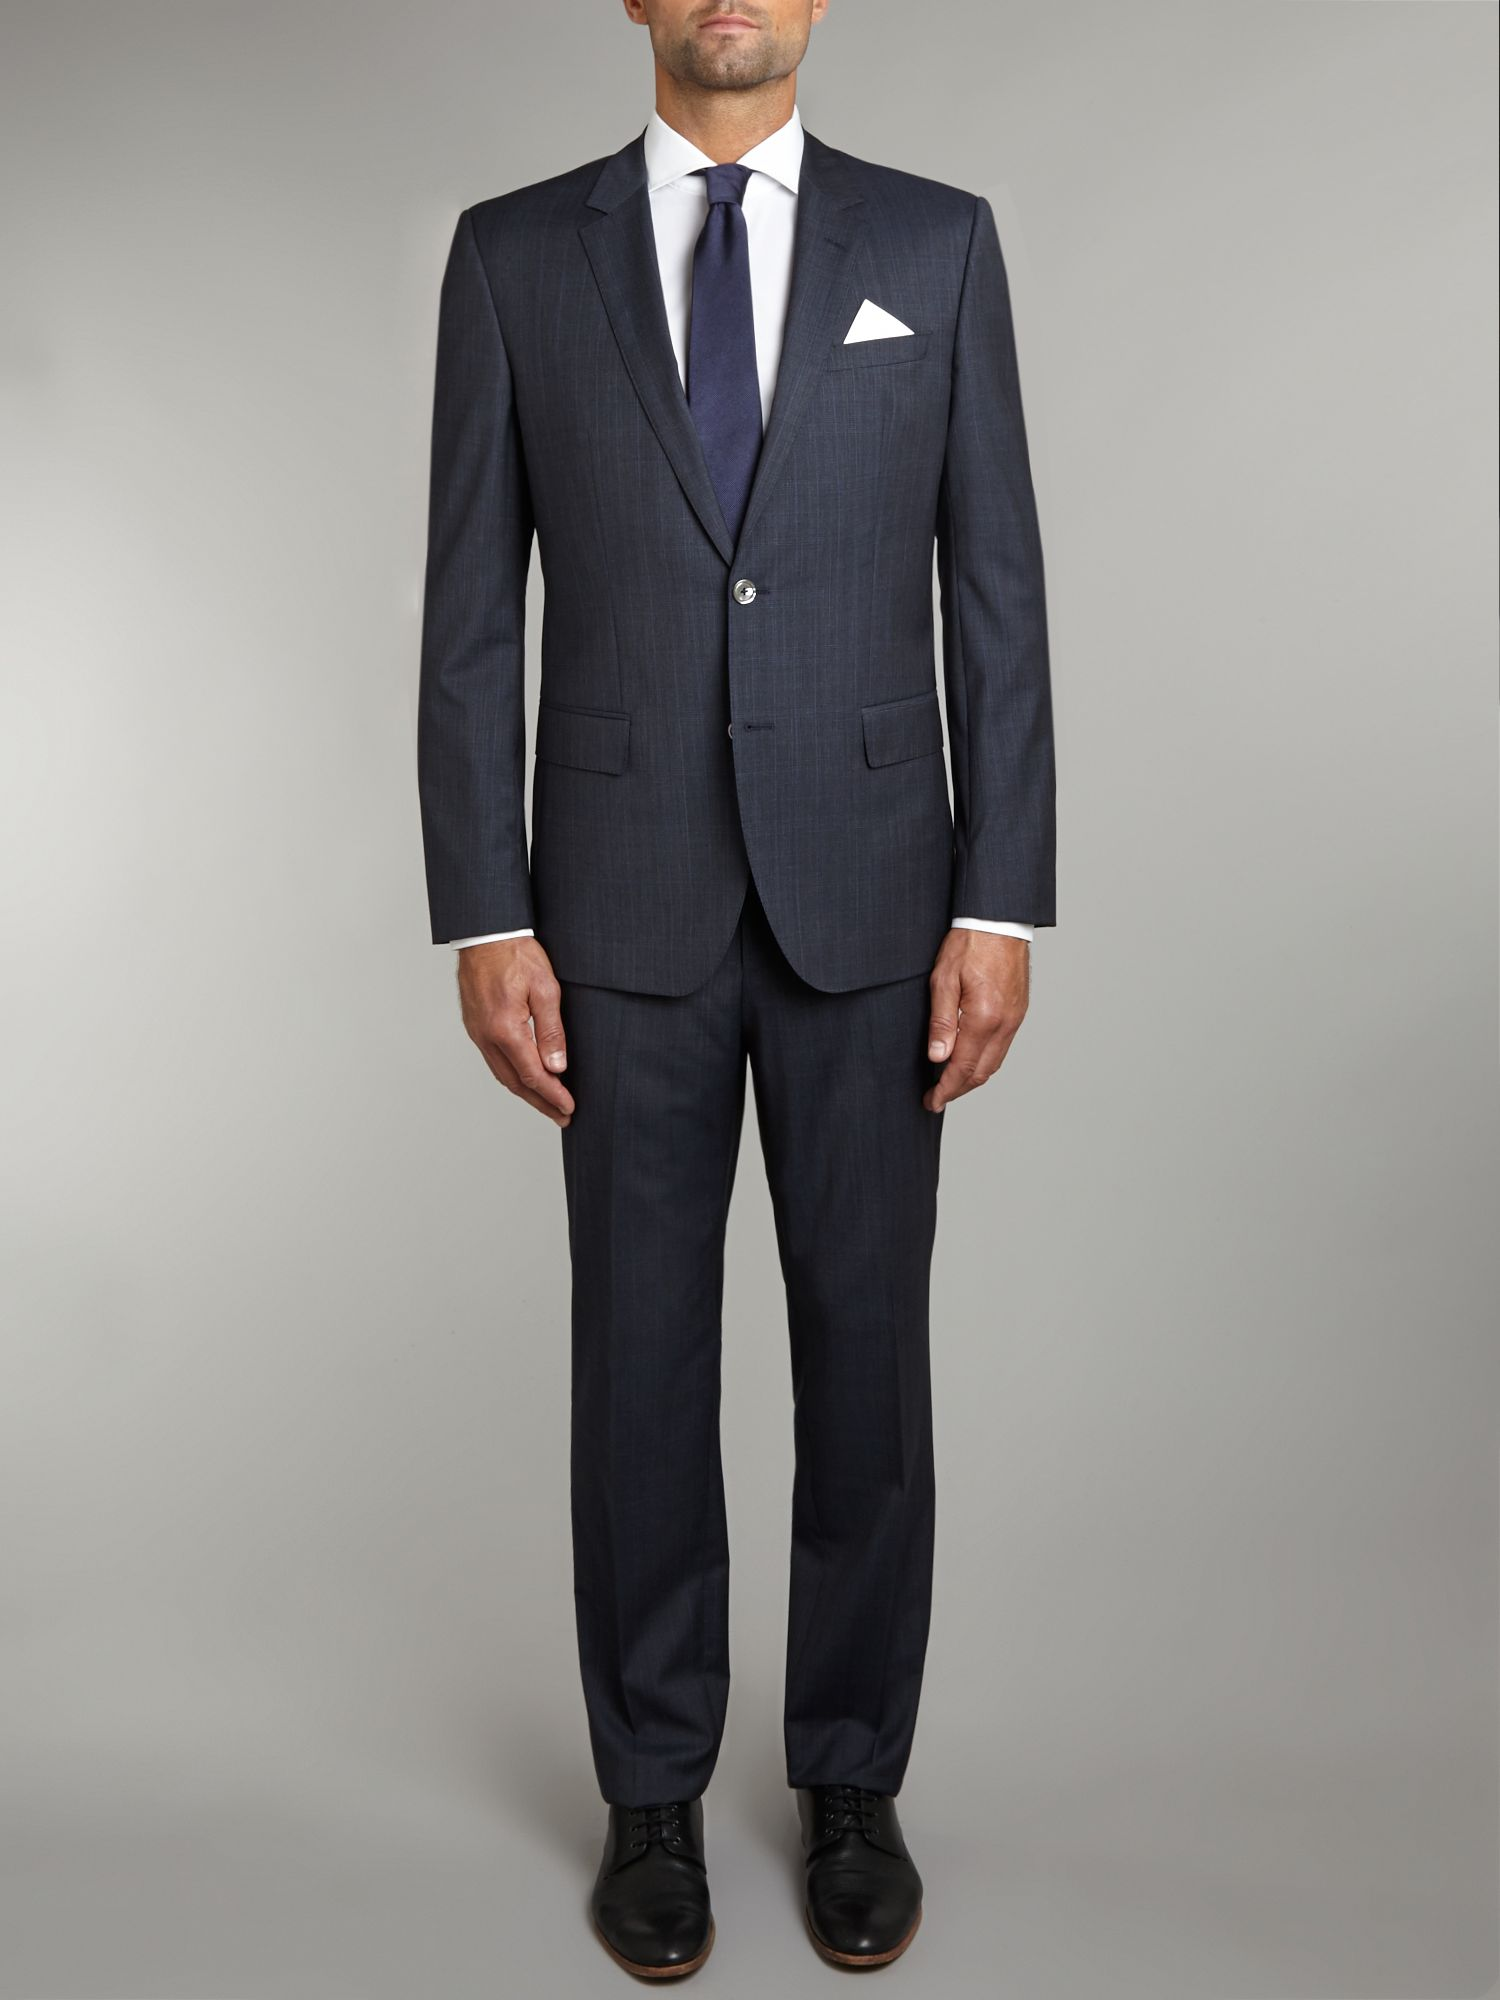 Huston/Gander slim fit subtle check suit